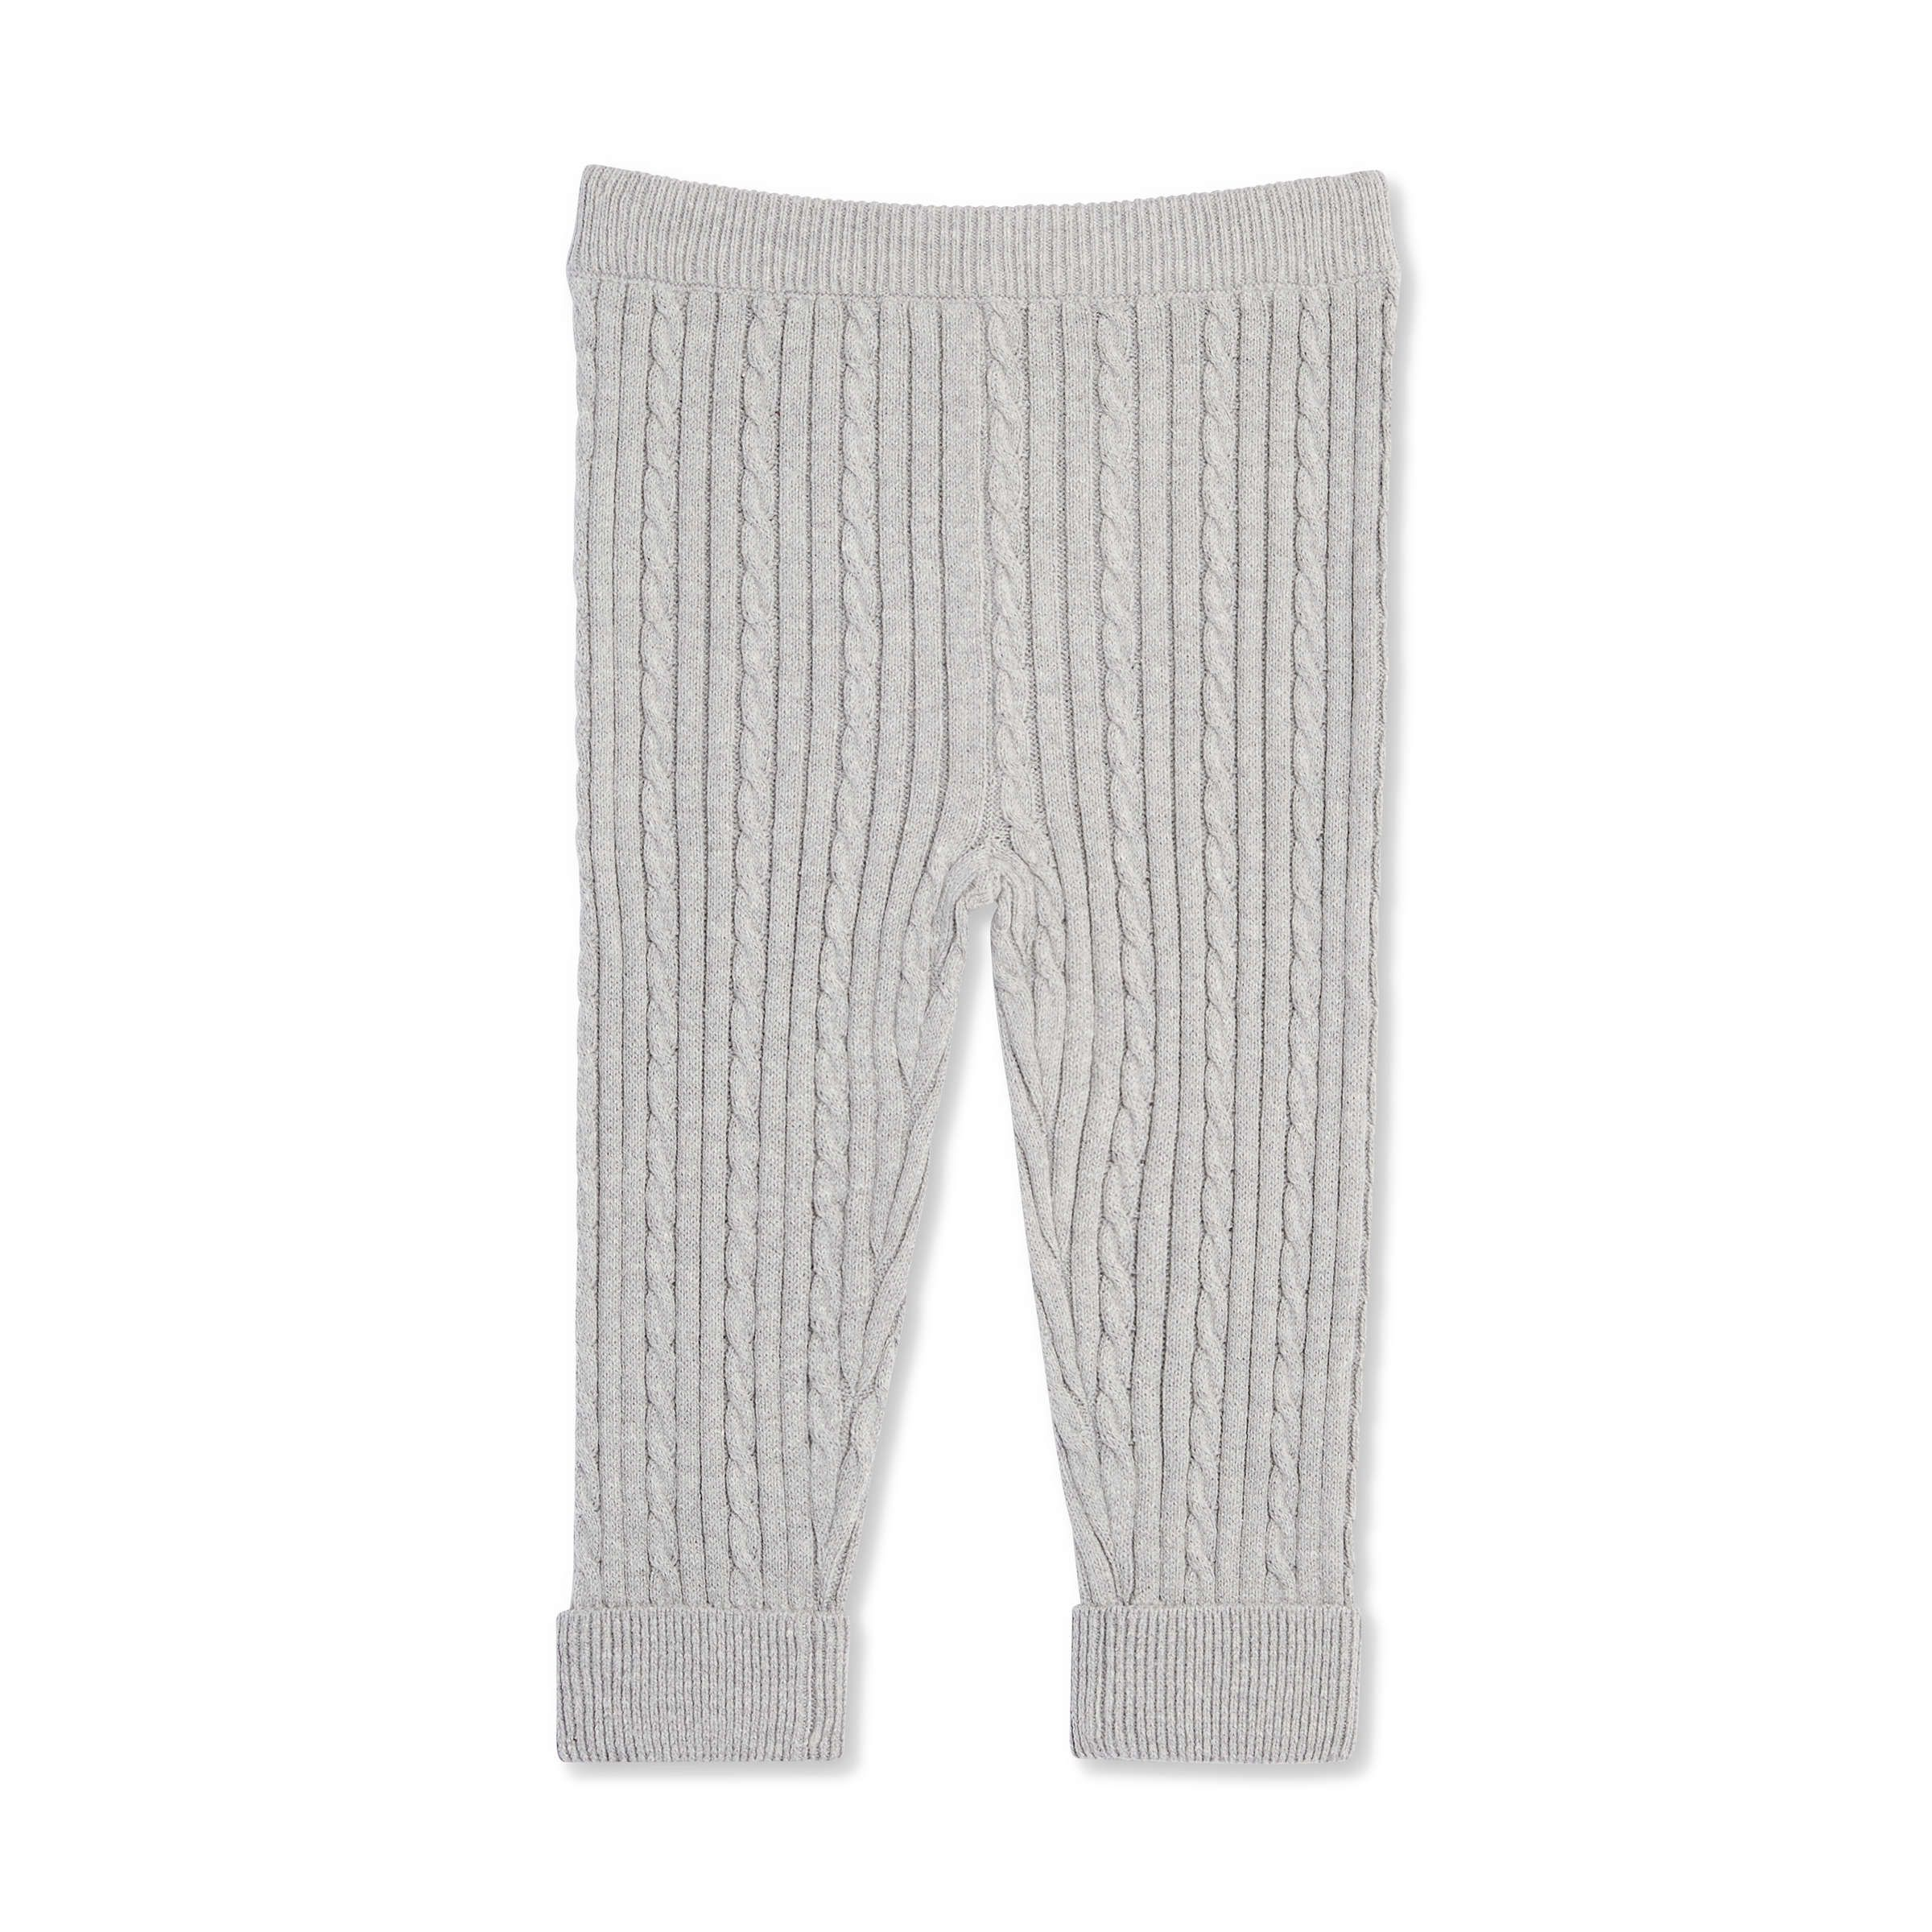 Warm Cable Knit Makes These Leggings Extra Cozy For Fall Joe Fresh Baby Baby Girl Bottoms Knit Leggings